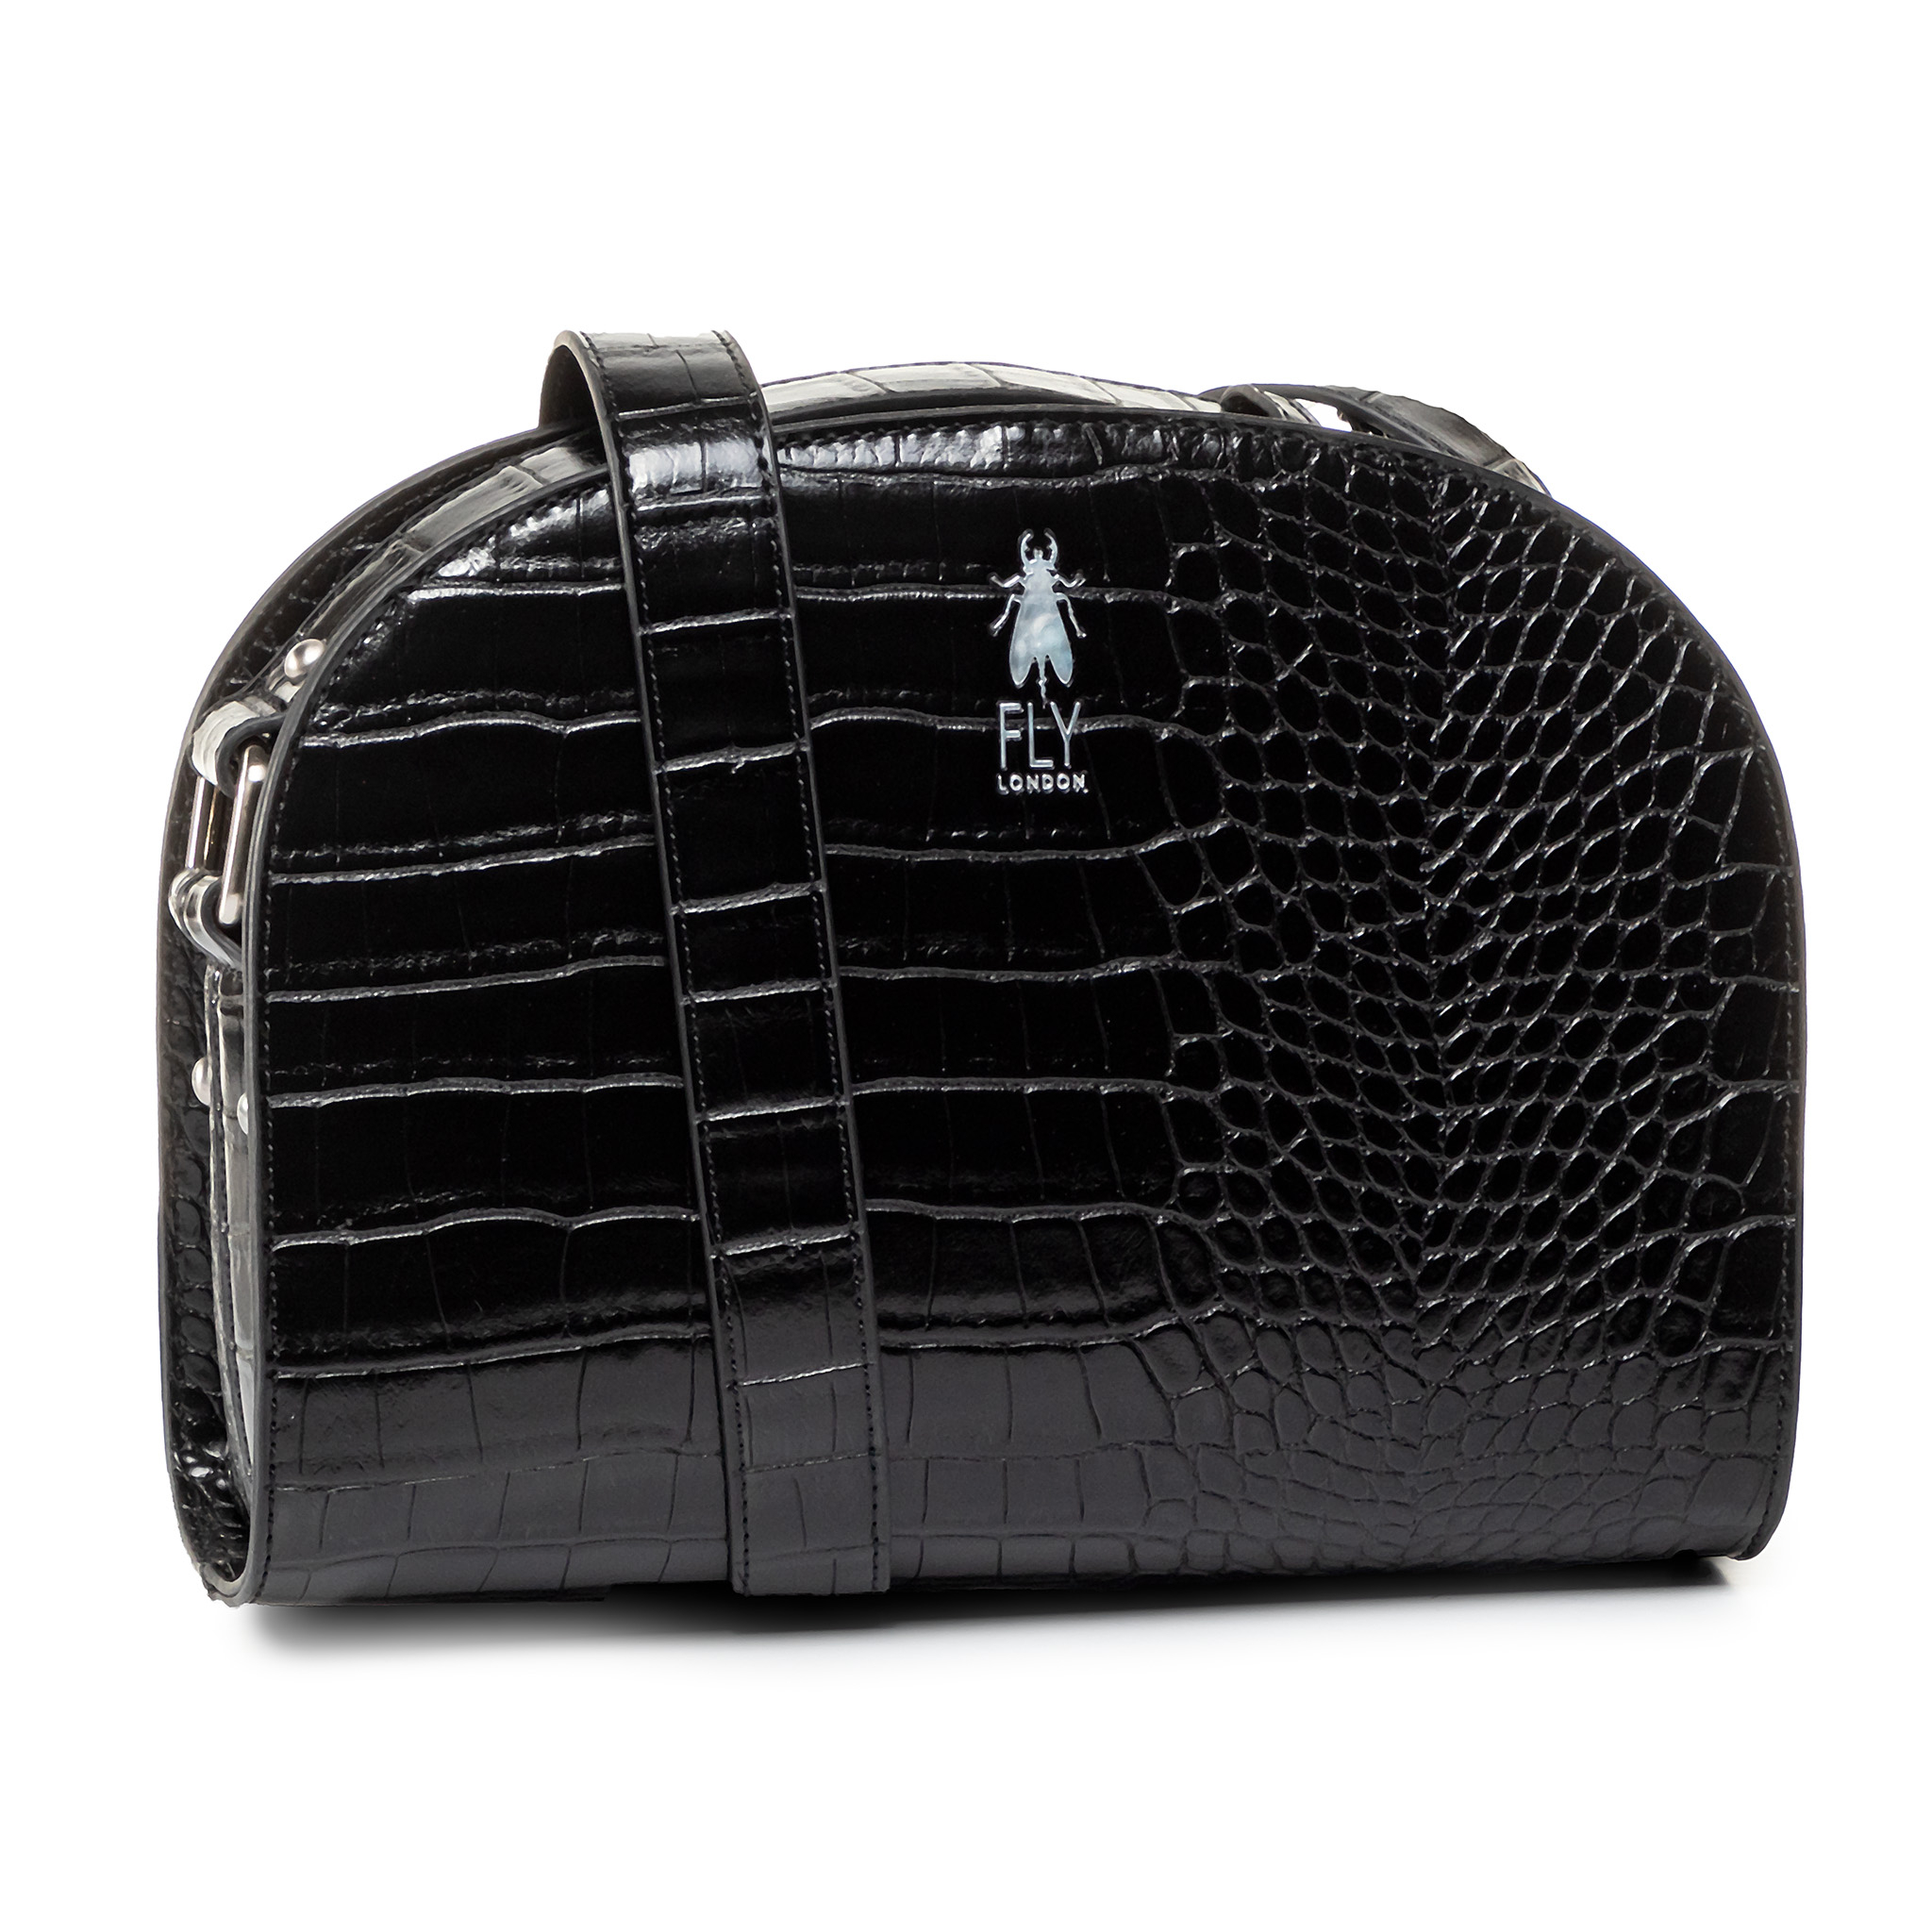 Geantă FLY LONDON - Hozifly P974676000 Black